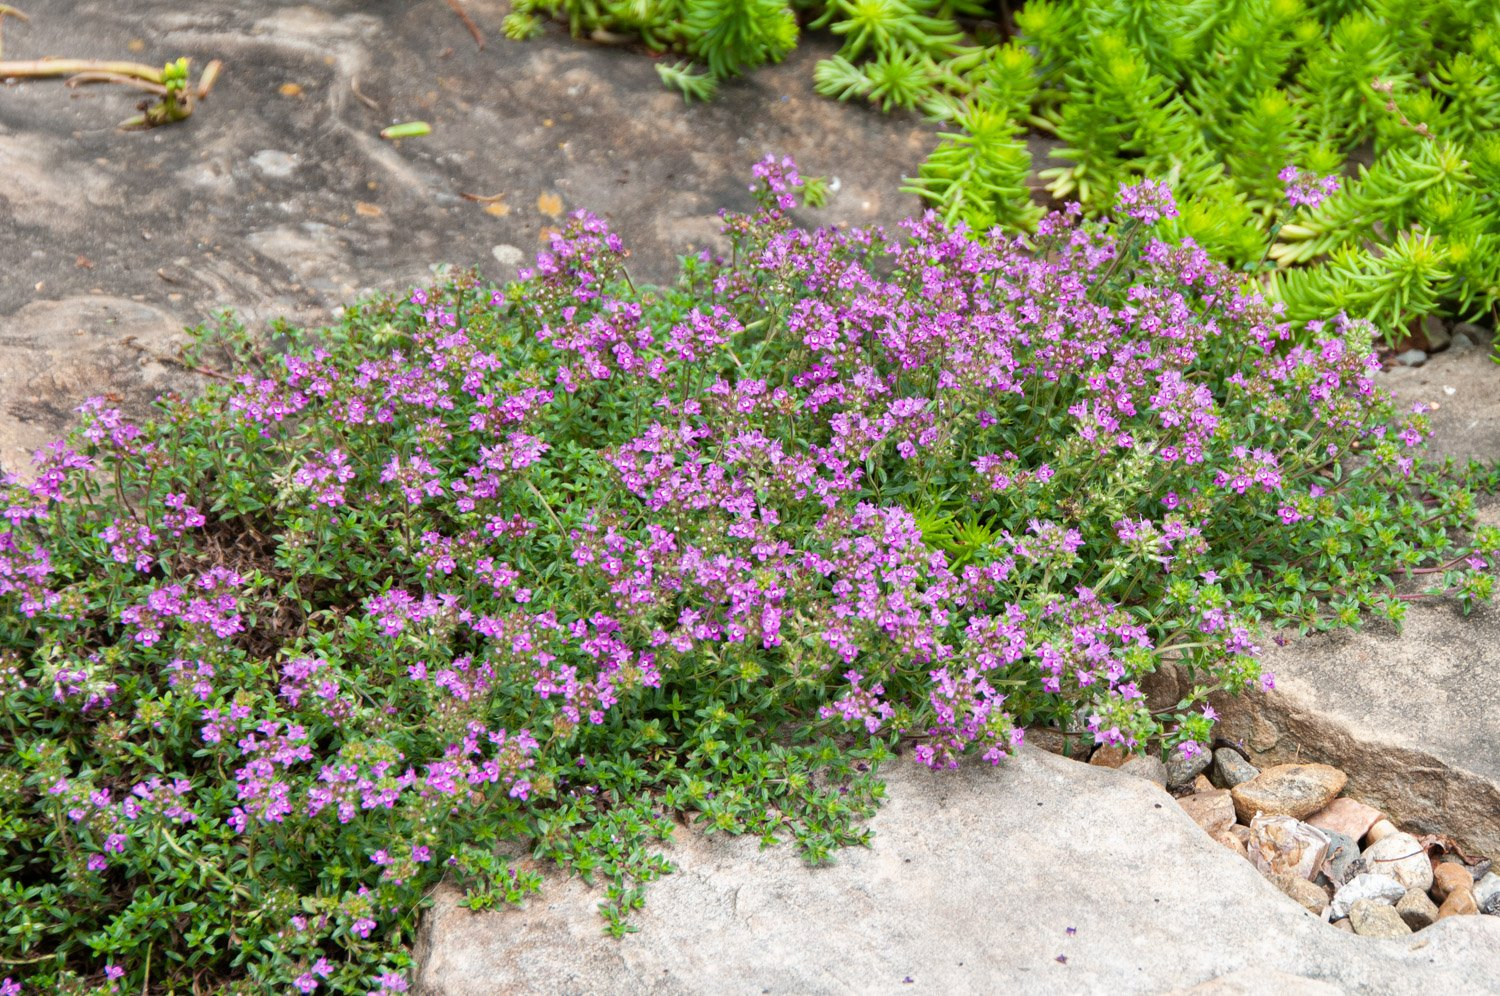 Creeping Thyme blooming between stepping stones